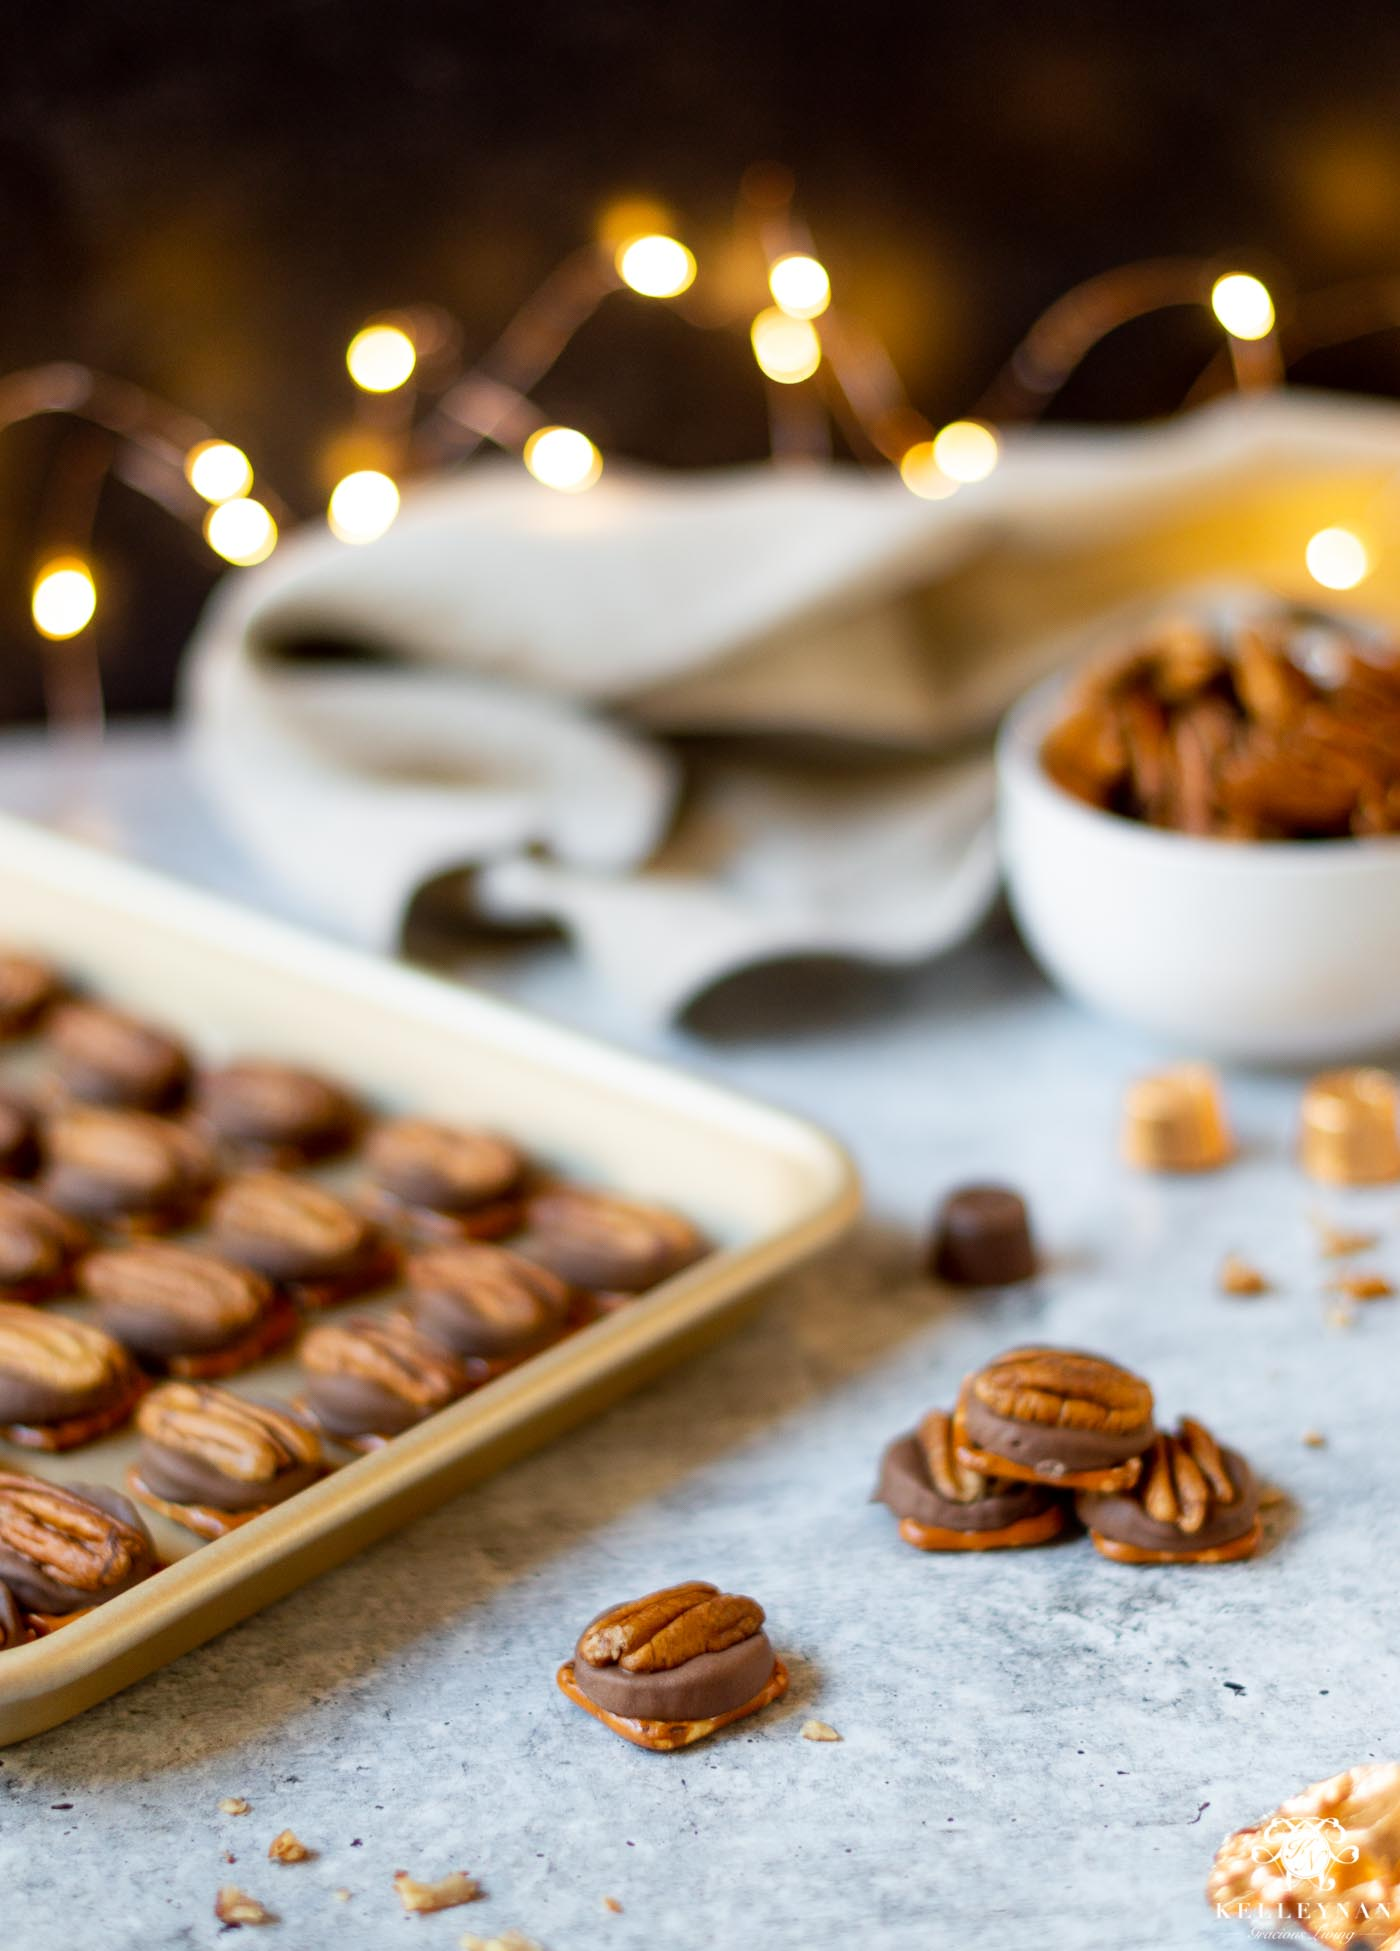 5 EASY Christmas Treats with 5 Ingredients (or less!) Turtles are finished in minutes!